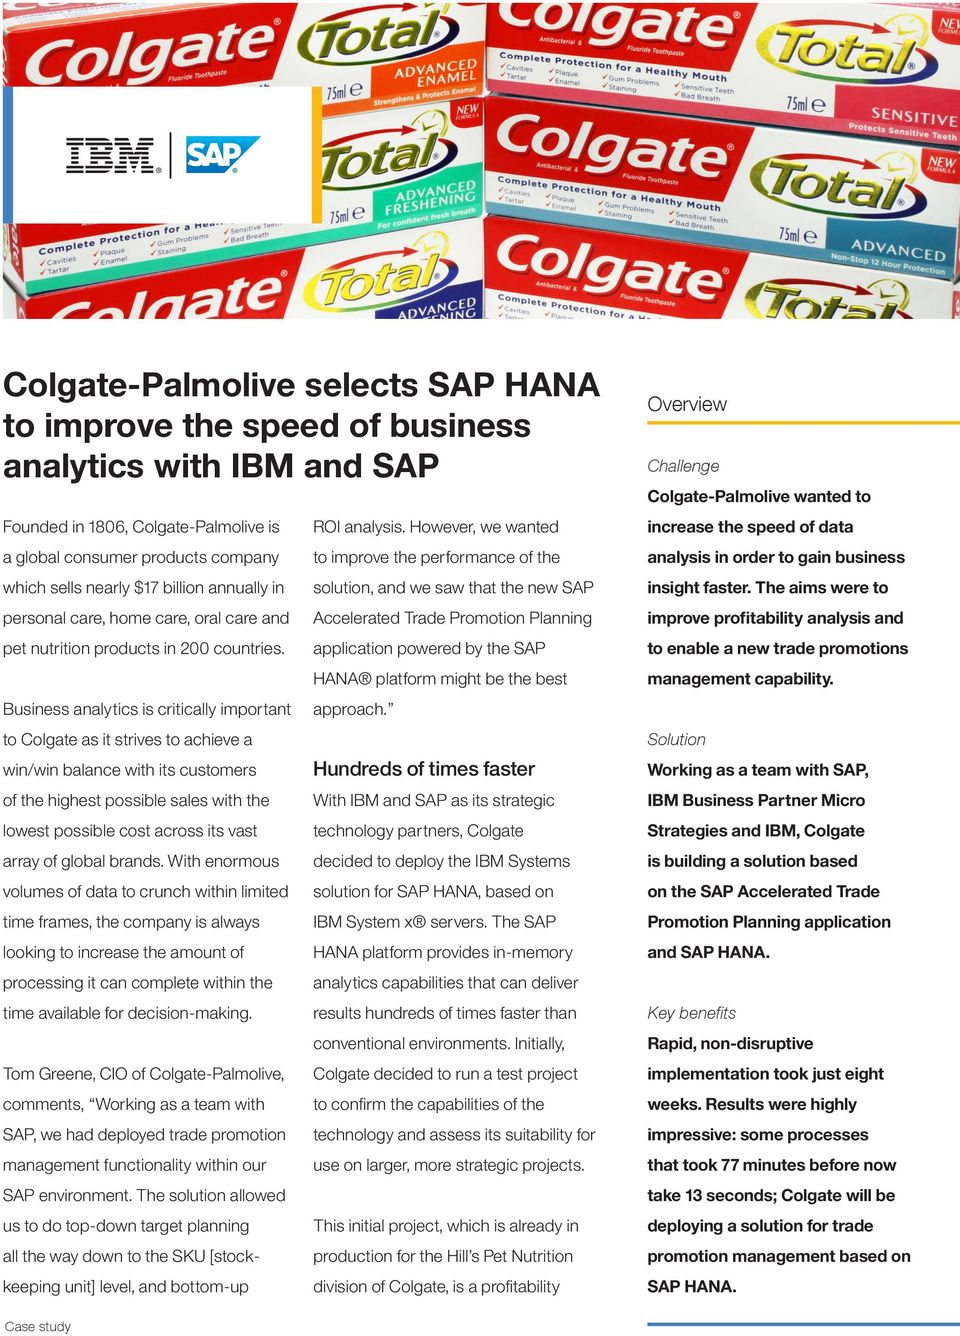 Business analytics is critically important to Colgate as it strives to achieve a win/win balance with its customers of the highest possible sales with the lowest possible cost across its vast array